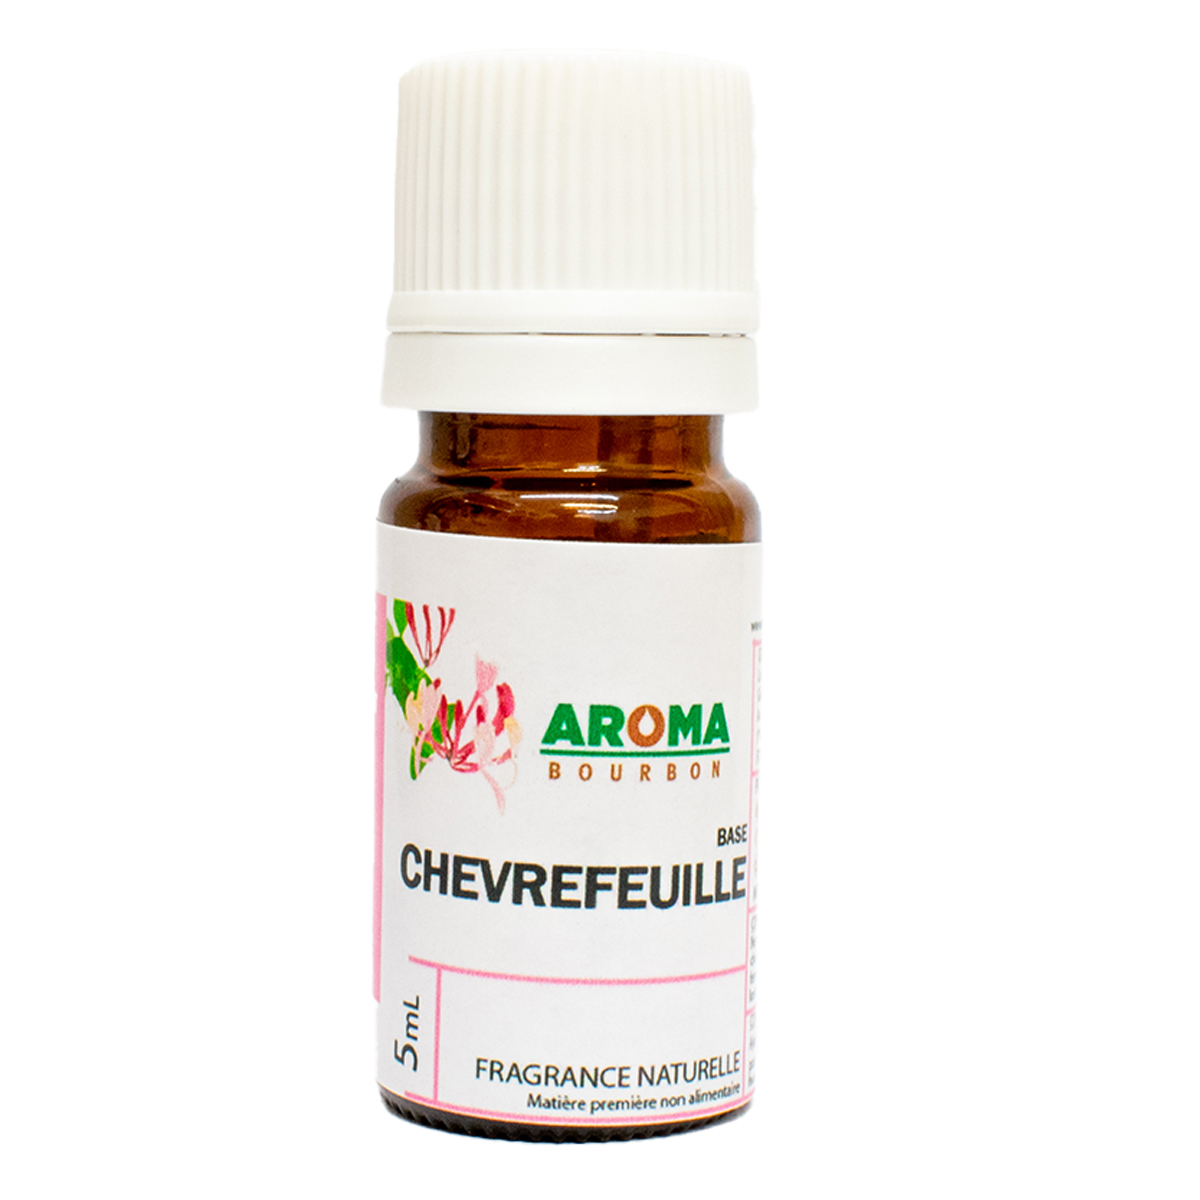 CHEVREFEUILLE - Fragrance naturelle